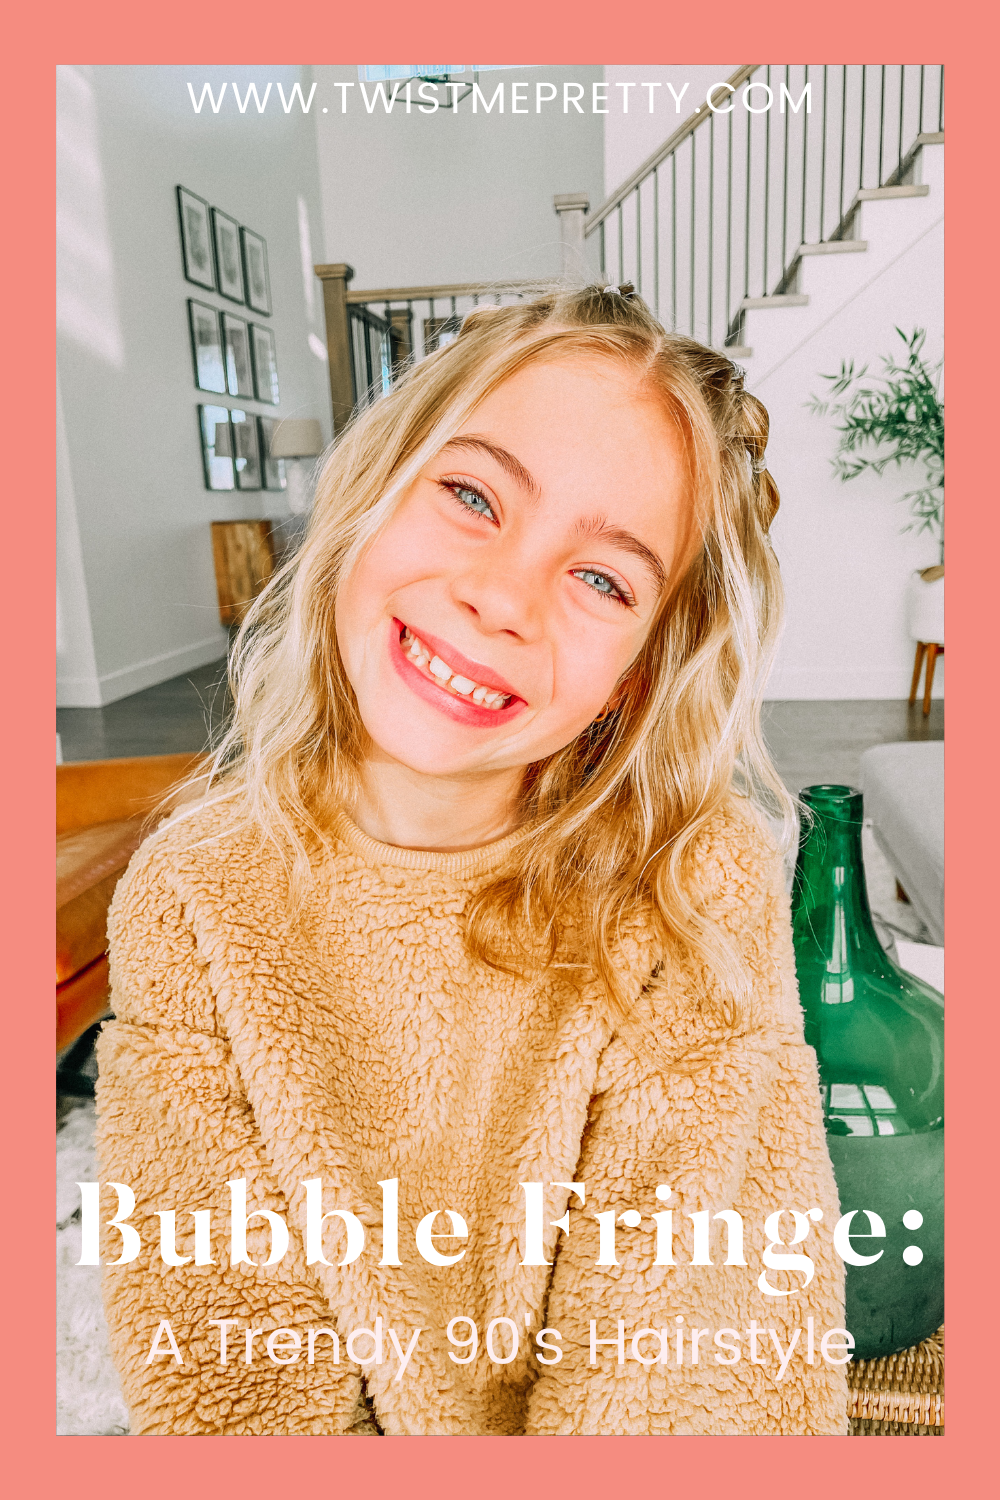 Bubble Fringe: A Trendy 90's Hairstyle www.twistmepretty.com